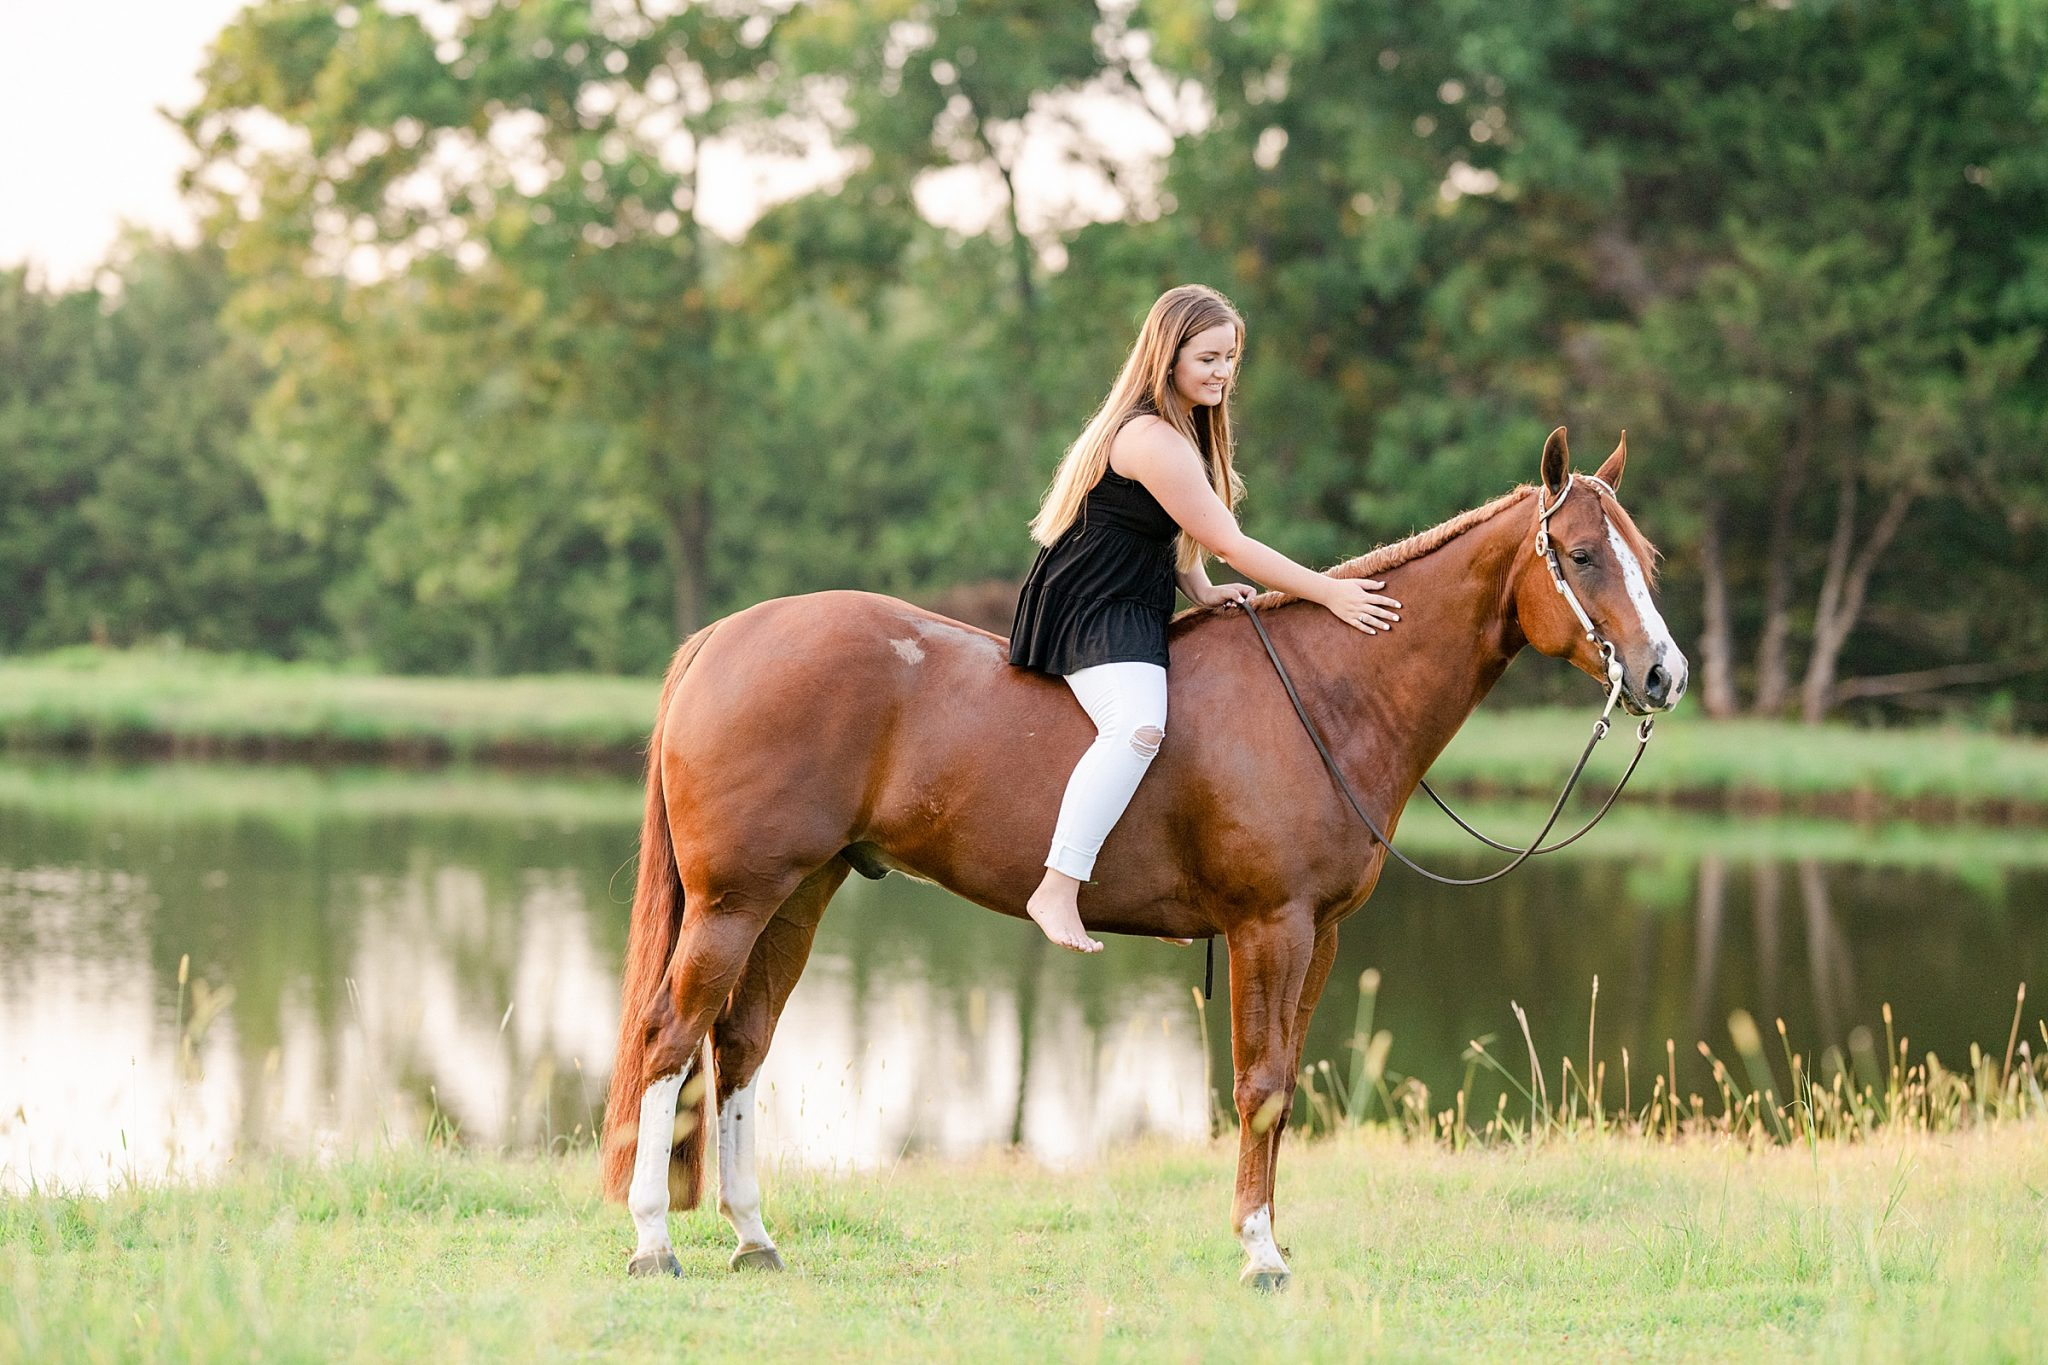 https://kirstiemarie.com/wp-content/uploads/2020/09/Sydnie-Ochs-and-No-Doubting-Me-AQHYA-World-Champion-Western-Pleasure-Senior-Pictures-Kirstie-Marie-Photography_0016-2048x1365.jpg